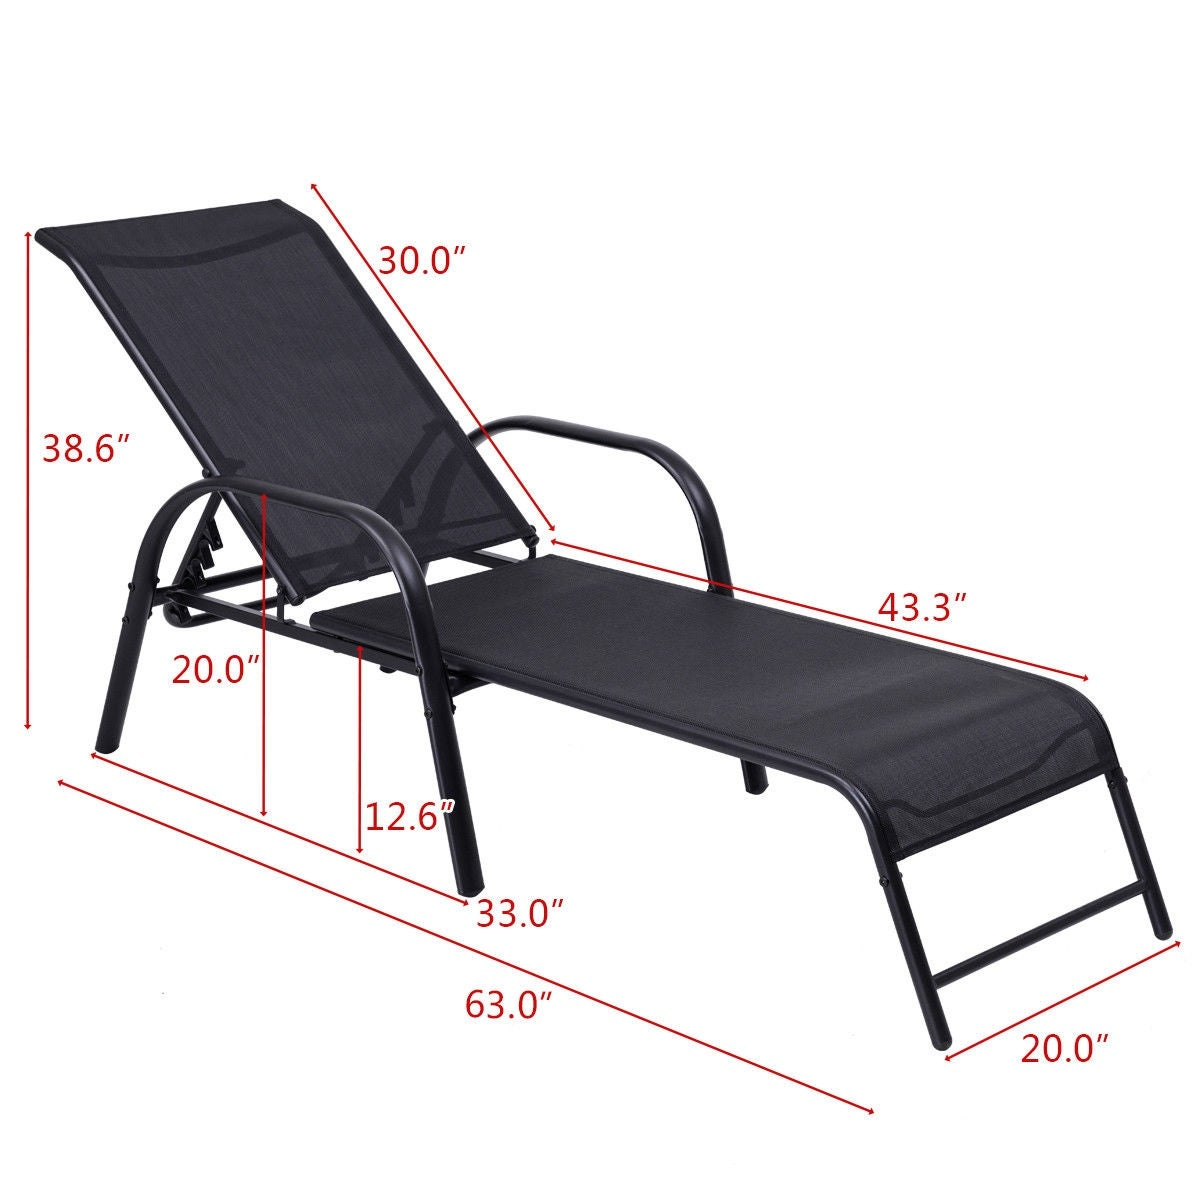 Goplus Outdoor Patio Chaise Lounge Chairs Sling Lounges Recliner Adjule Back Black Free Shipping Today 23140352